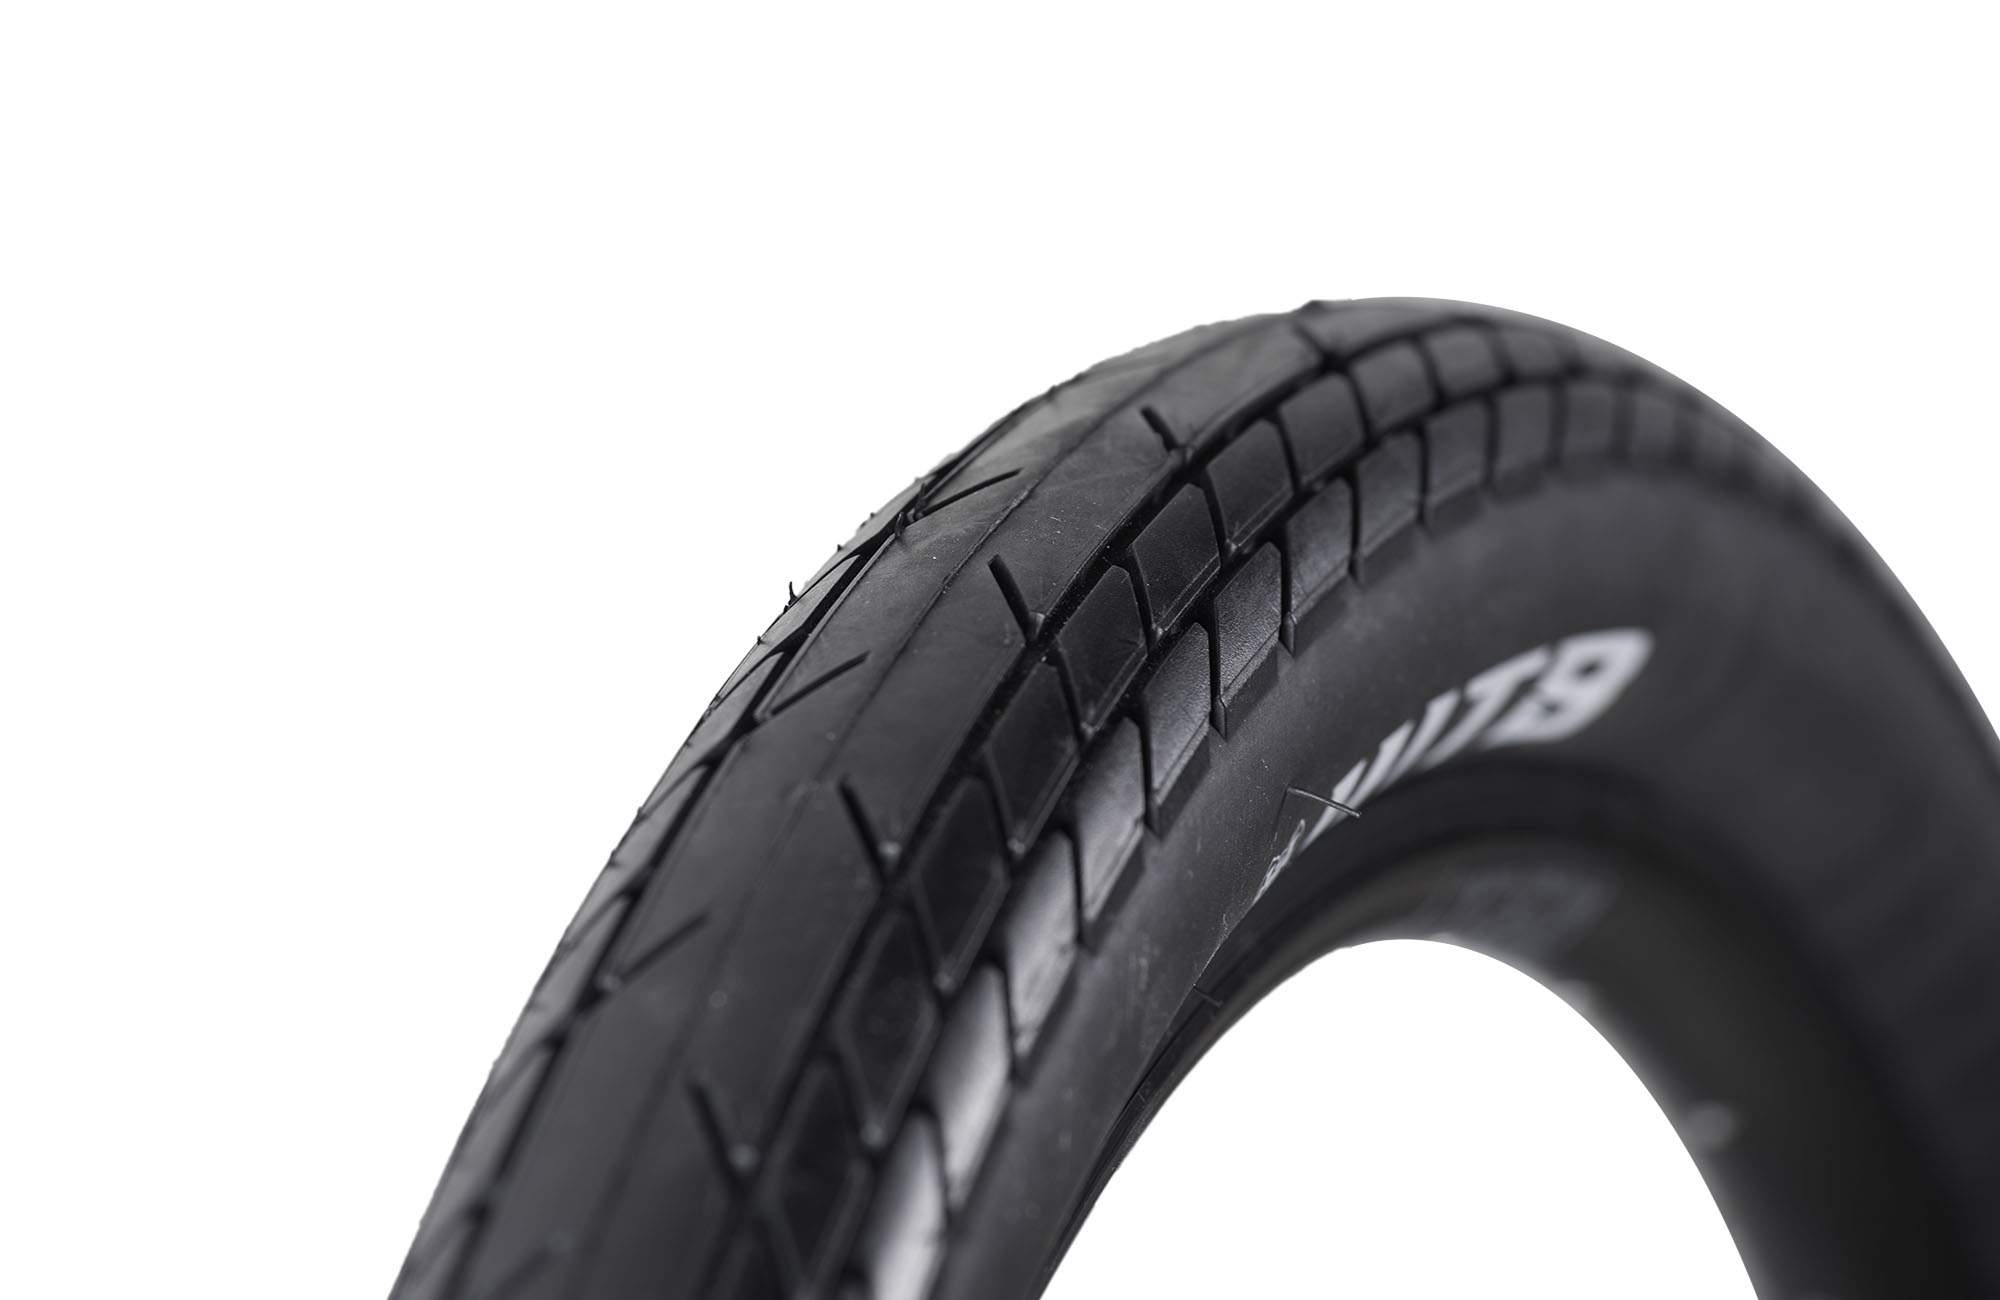 Image result for WTB city tire